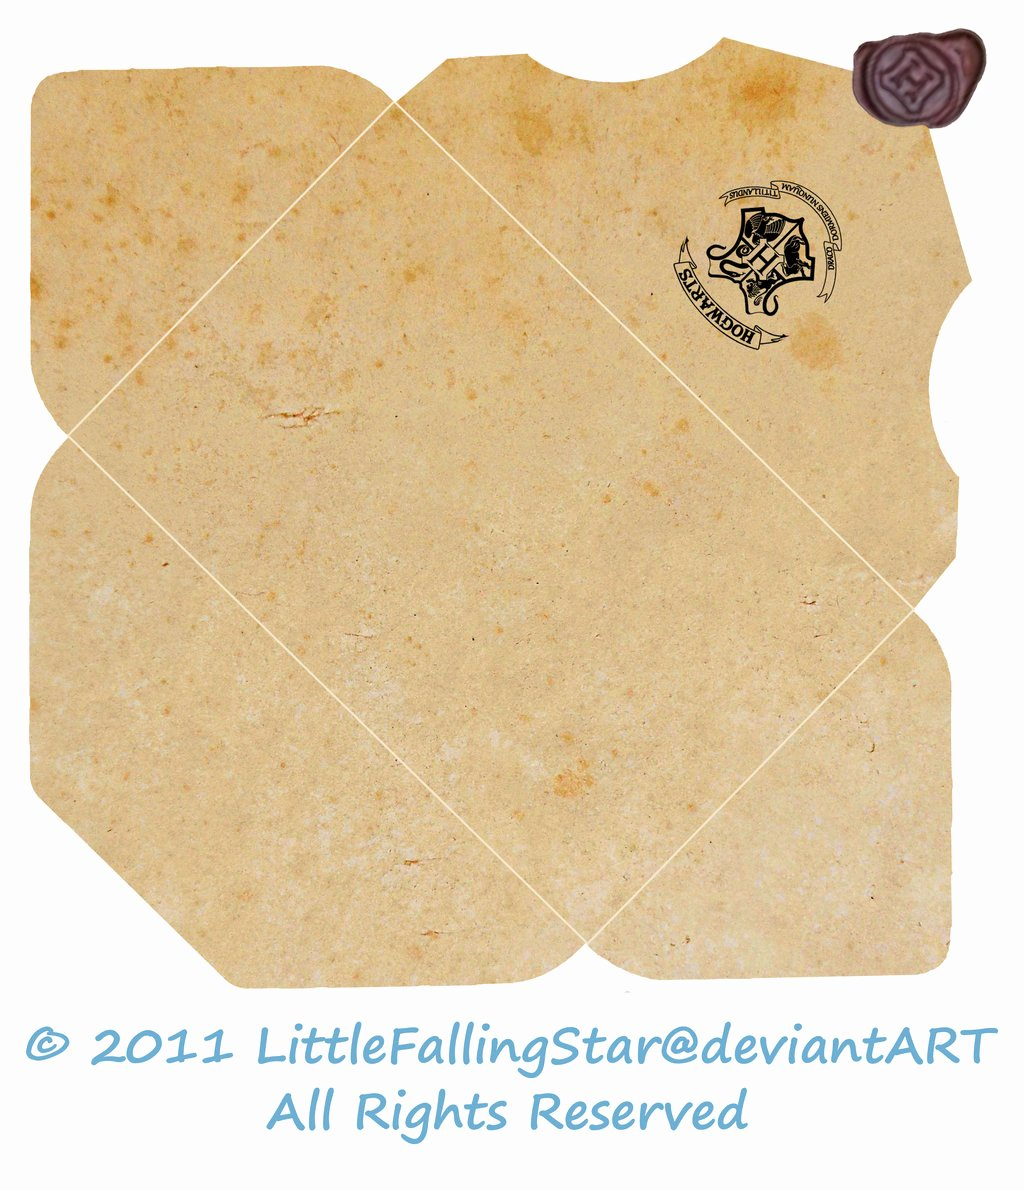 Hogwarts Envelope Printable Fresh 15 Hogwarts Envelope Printable